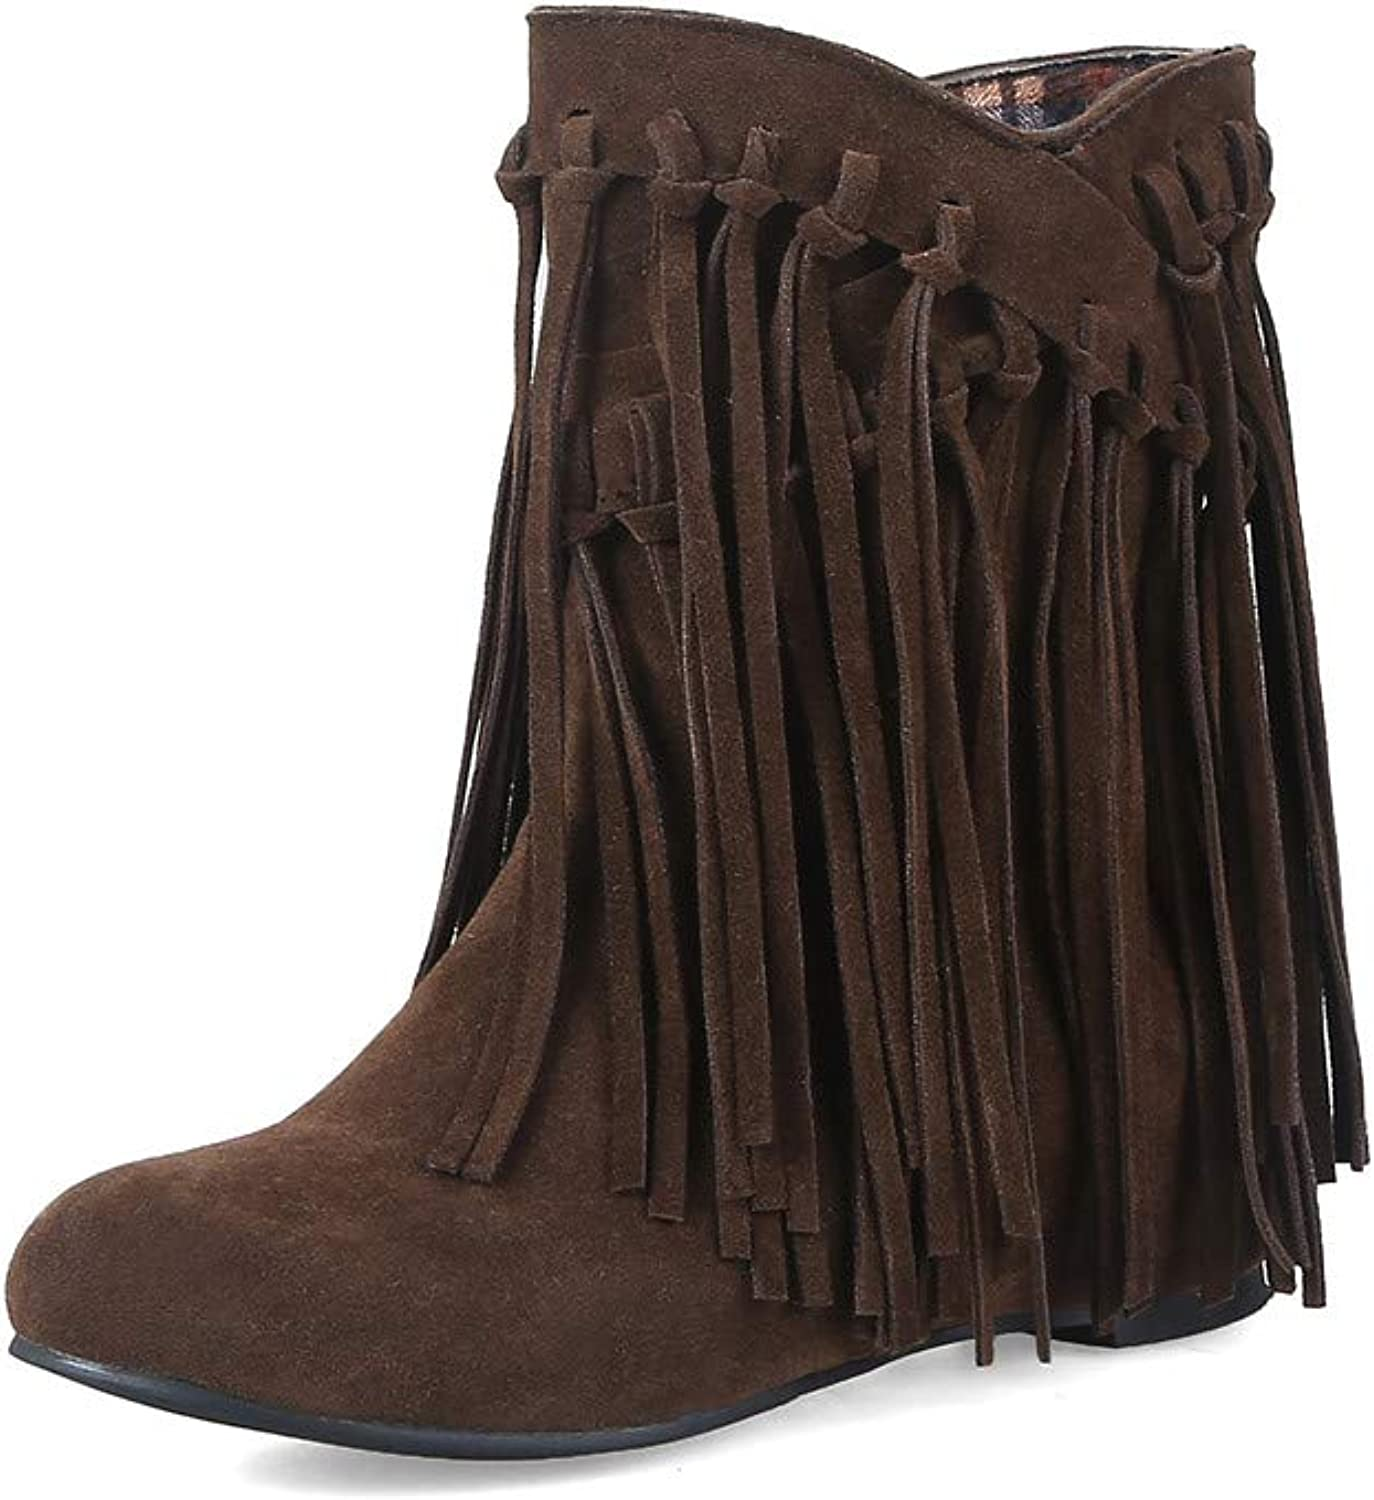 HILIB Woman's Low Heel Tassle Ankle Boots Autumn Winter Wedge Boots